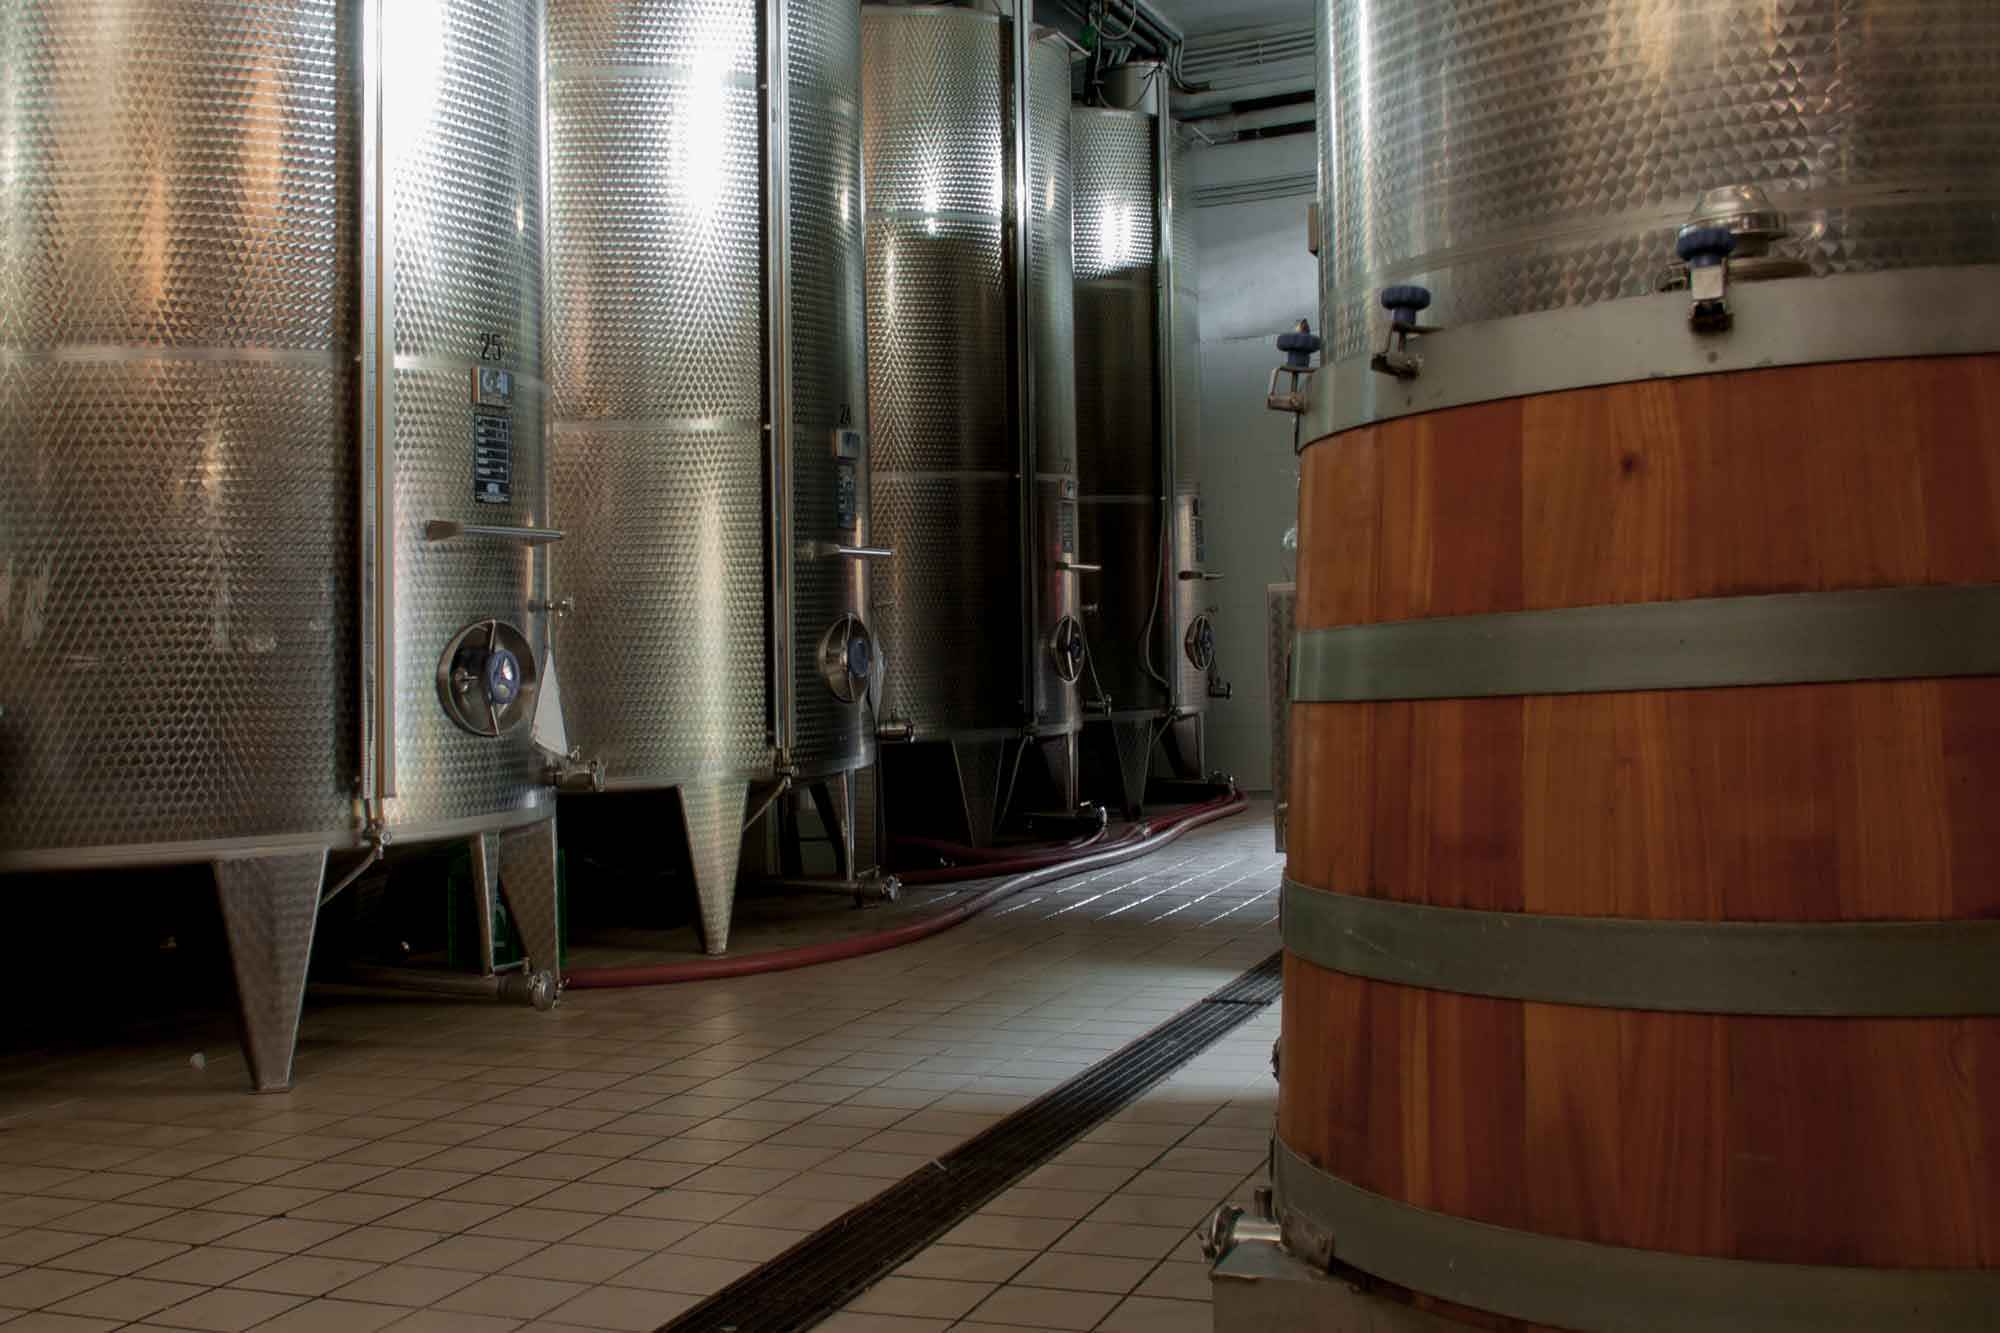 inox stainless steel tanks of Cantine Astroni